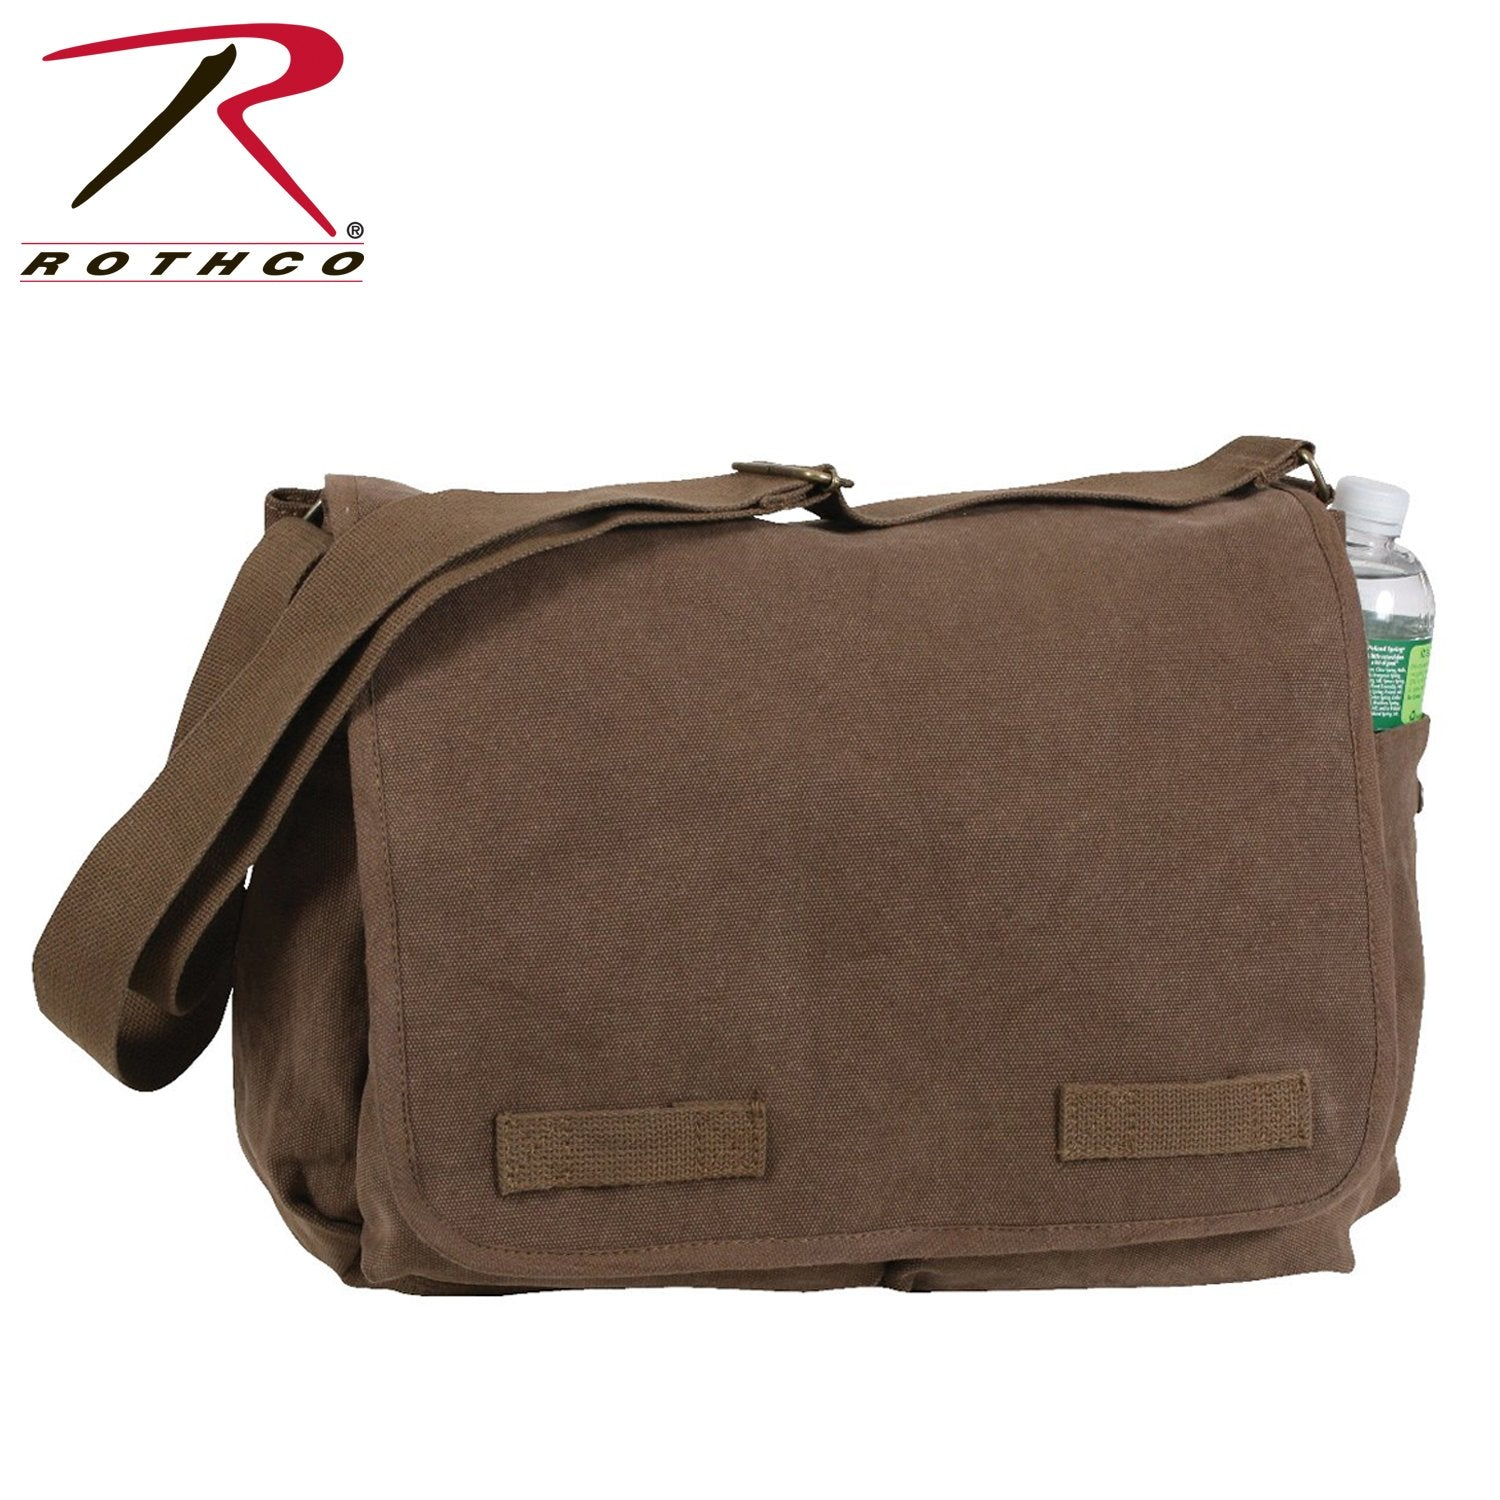 86f36d8547 Vintage Canvas Messenger Bag - Jack Bauer ...